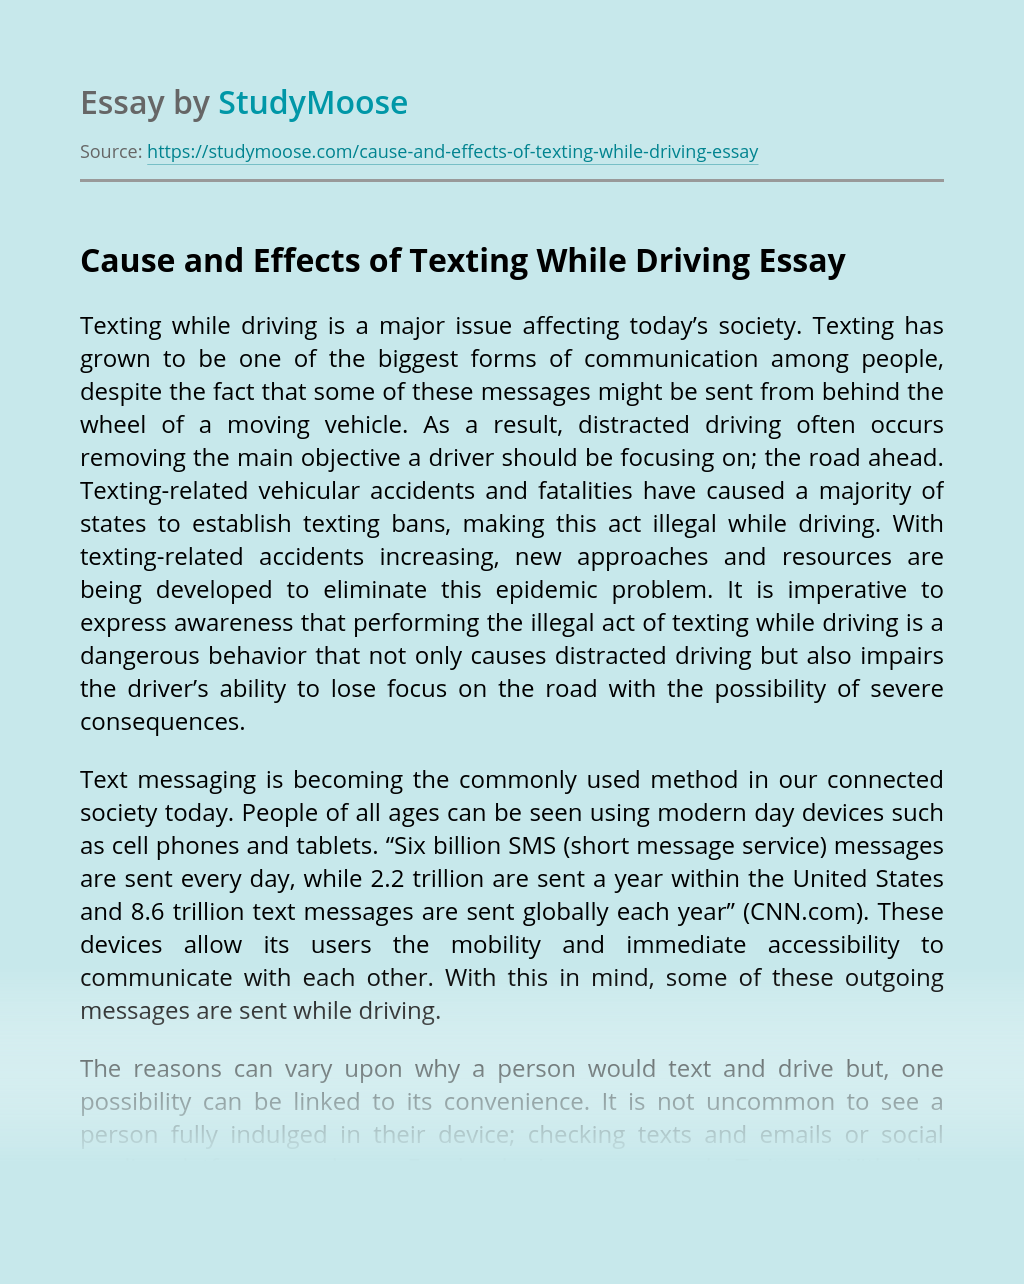 Cause and Effects of Texting While Driving